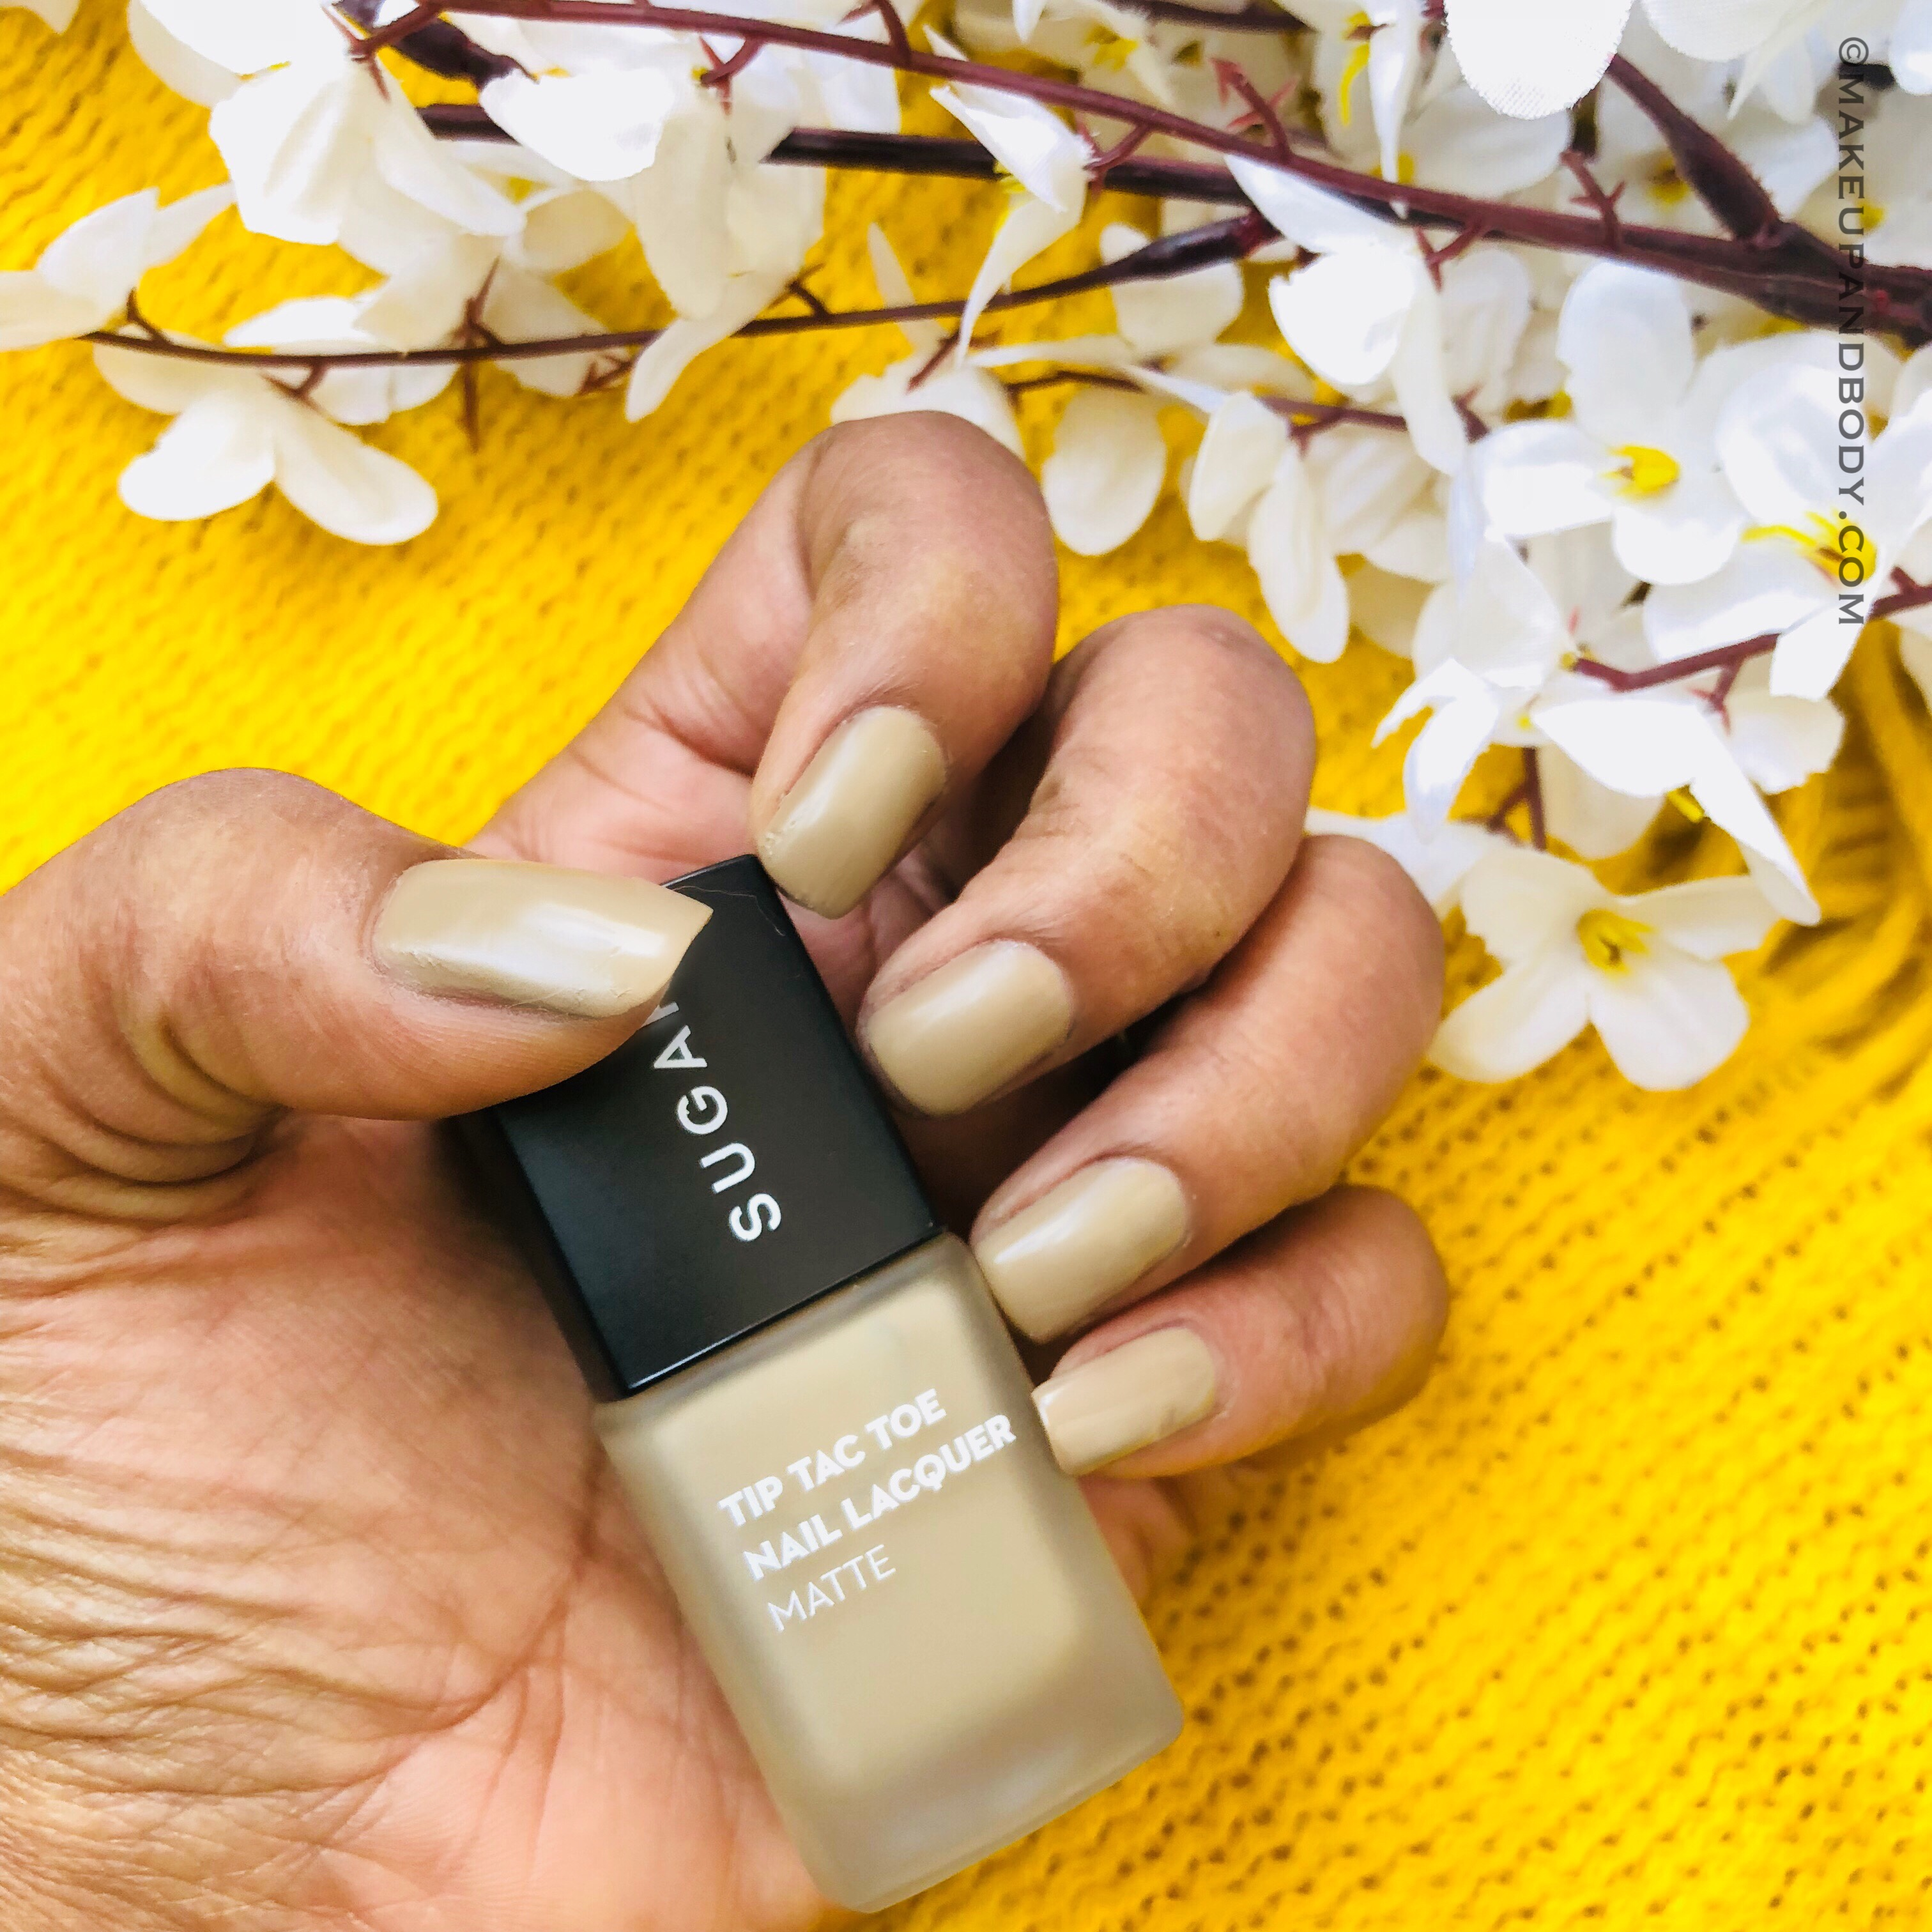 SUGAR Tip Tac Toe Nail Lacquer New Collection Review & Swatches for COCOA Range